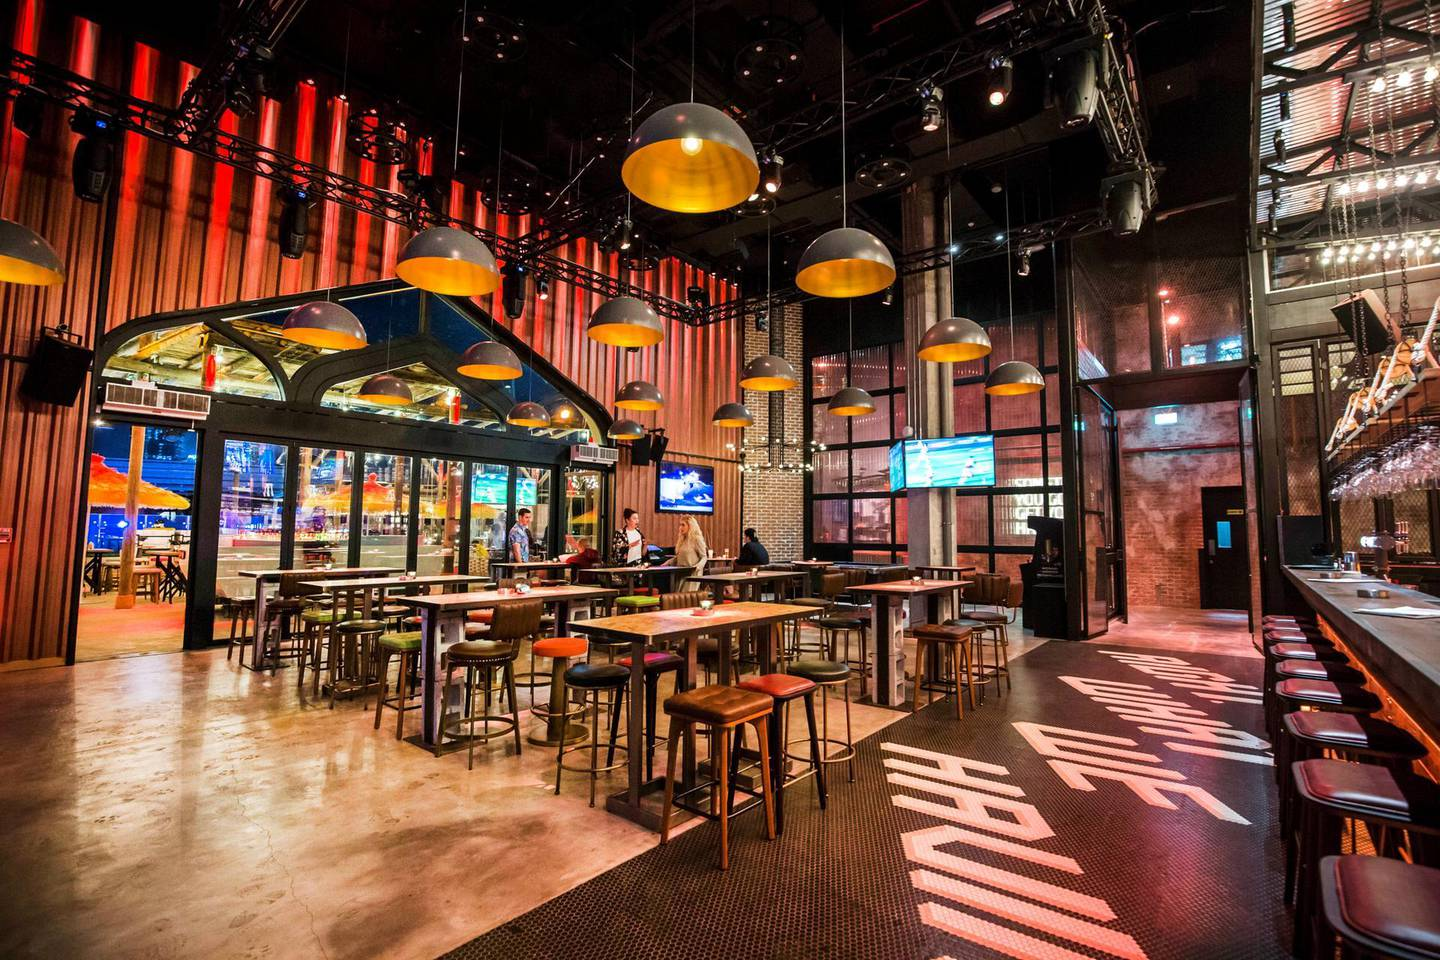 DUBAI, UNITED ARAB EMIRATES - A bar at a preview of new entertainment complex, Warehouse at Atlantis The Palm Dubai.  Leslie Pableo for The National for Katy Gillett's story